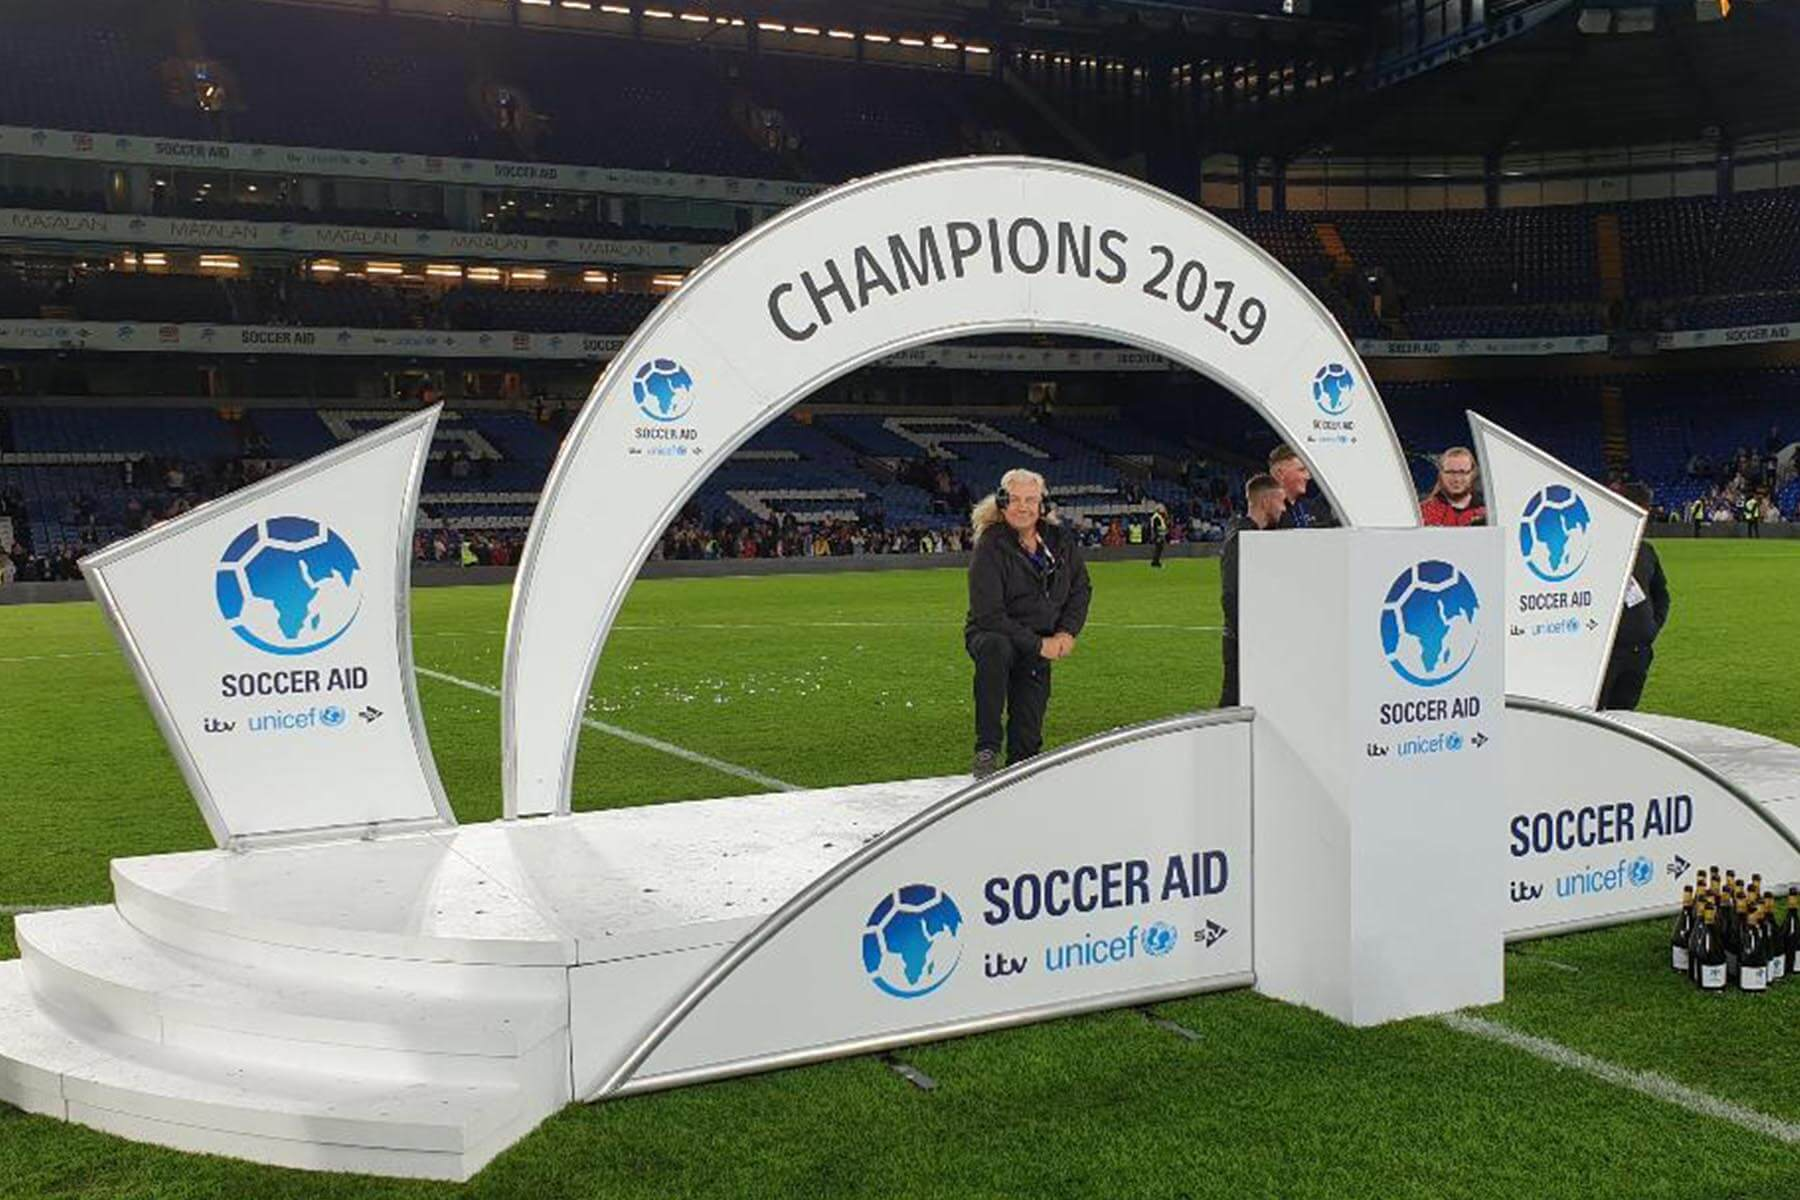 Presentation Stage with Arched Back for Soccer Aid 2019